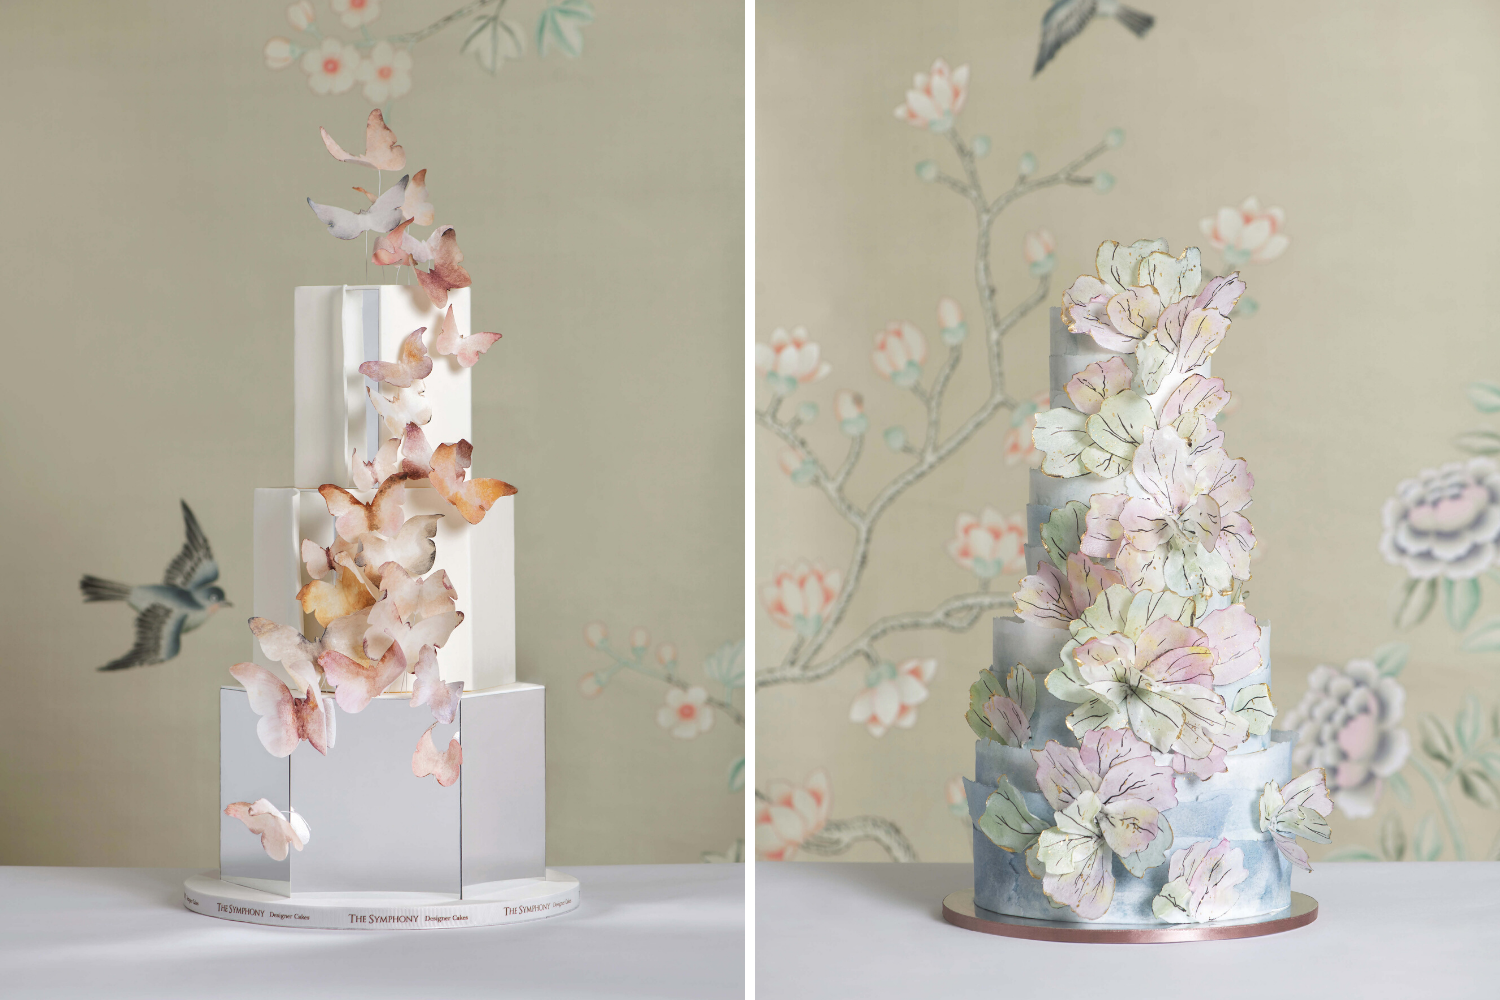 4 Beautiful Wedding Cake Ideas For Your Big Day